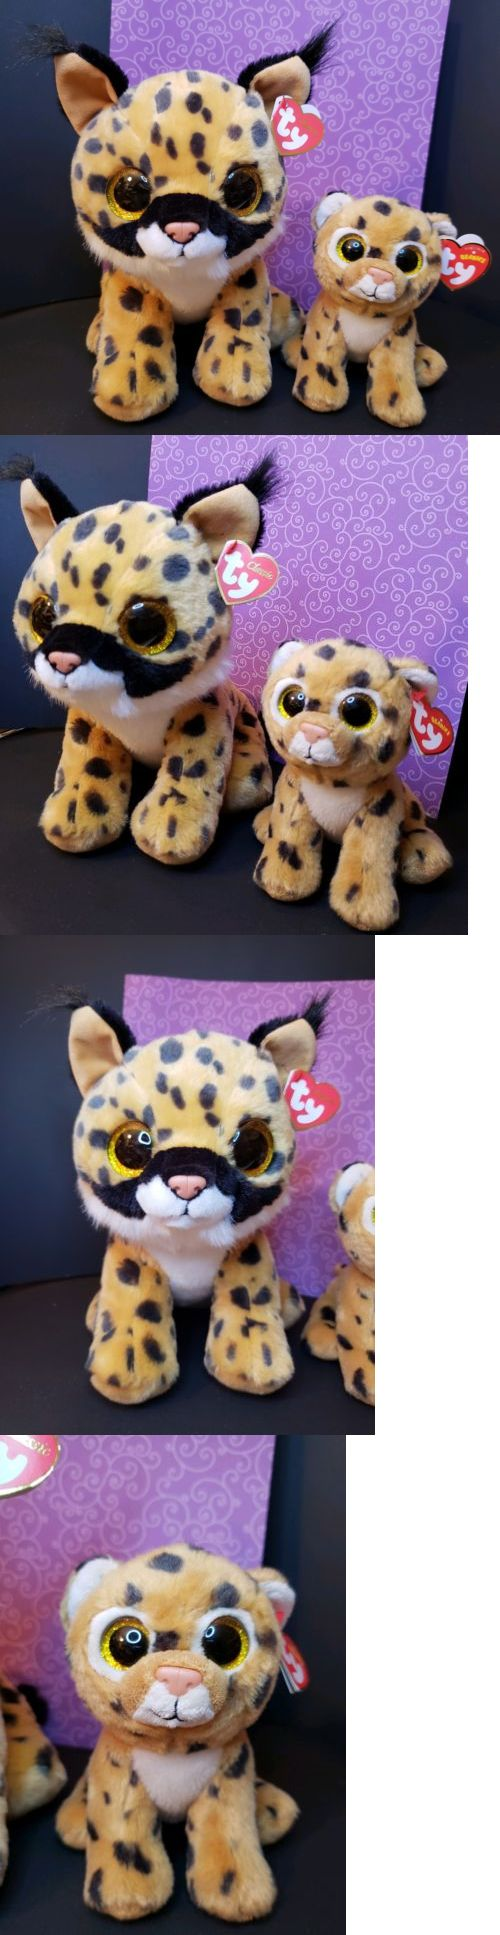 0b776fd7fd6 Other Ty Beanbag Plush 1037  Ty Lot 9 Larry 6 Freckles Lynx Cheetah Cat  Stuffed Animal Beanie Babies New -  BUY IT NOW ONLY   11.95 on  eBay  other   beanbag ...